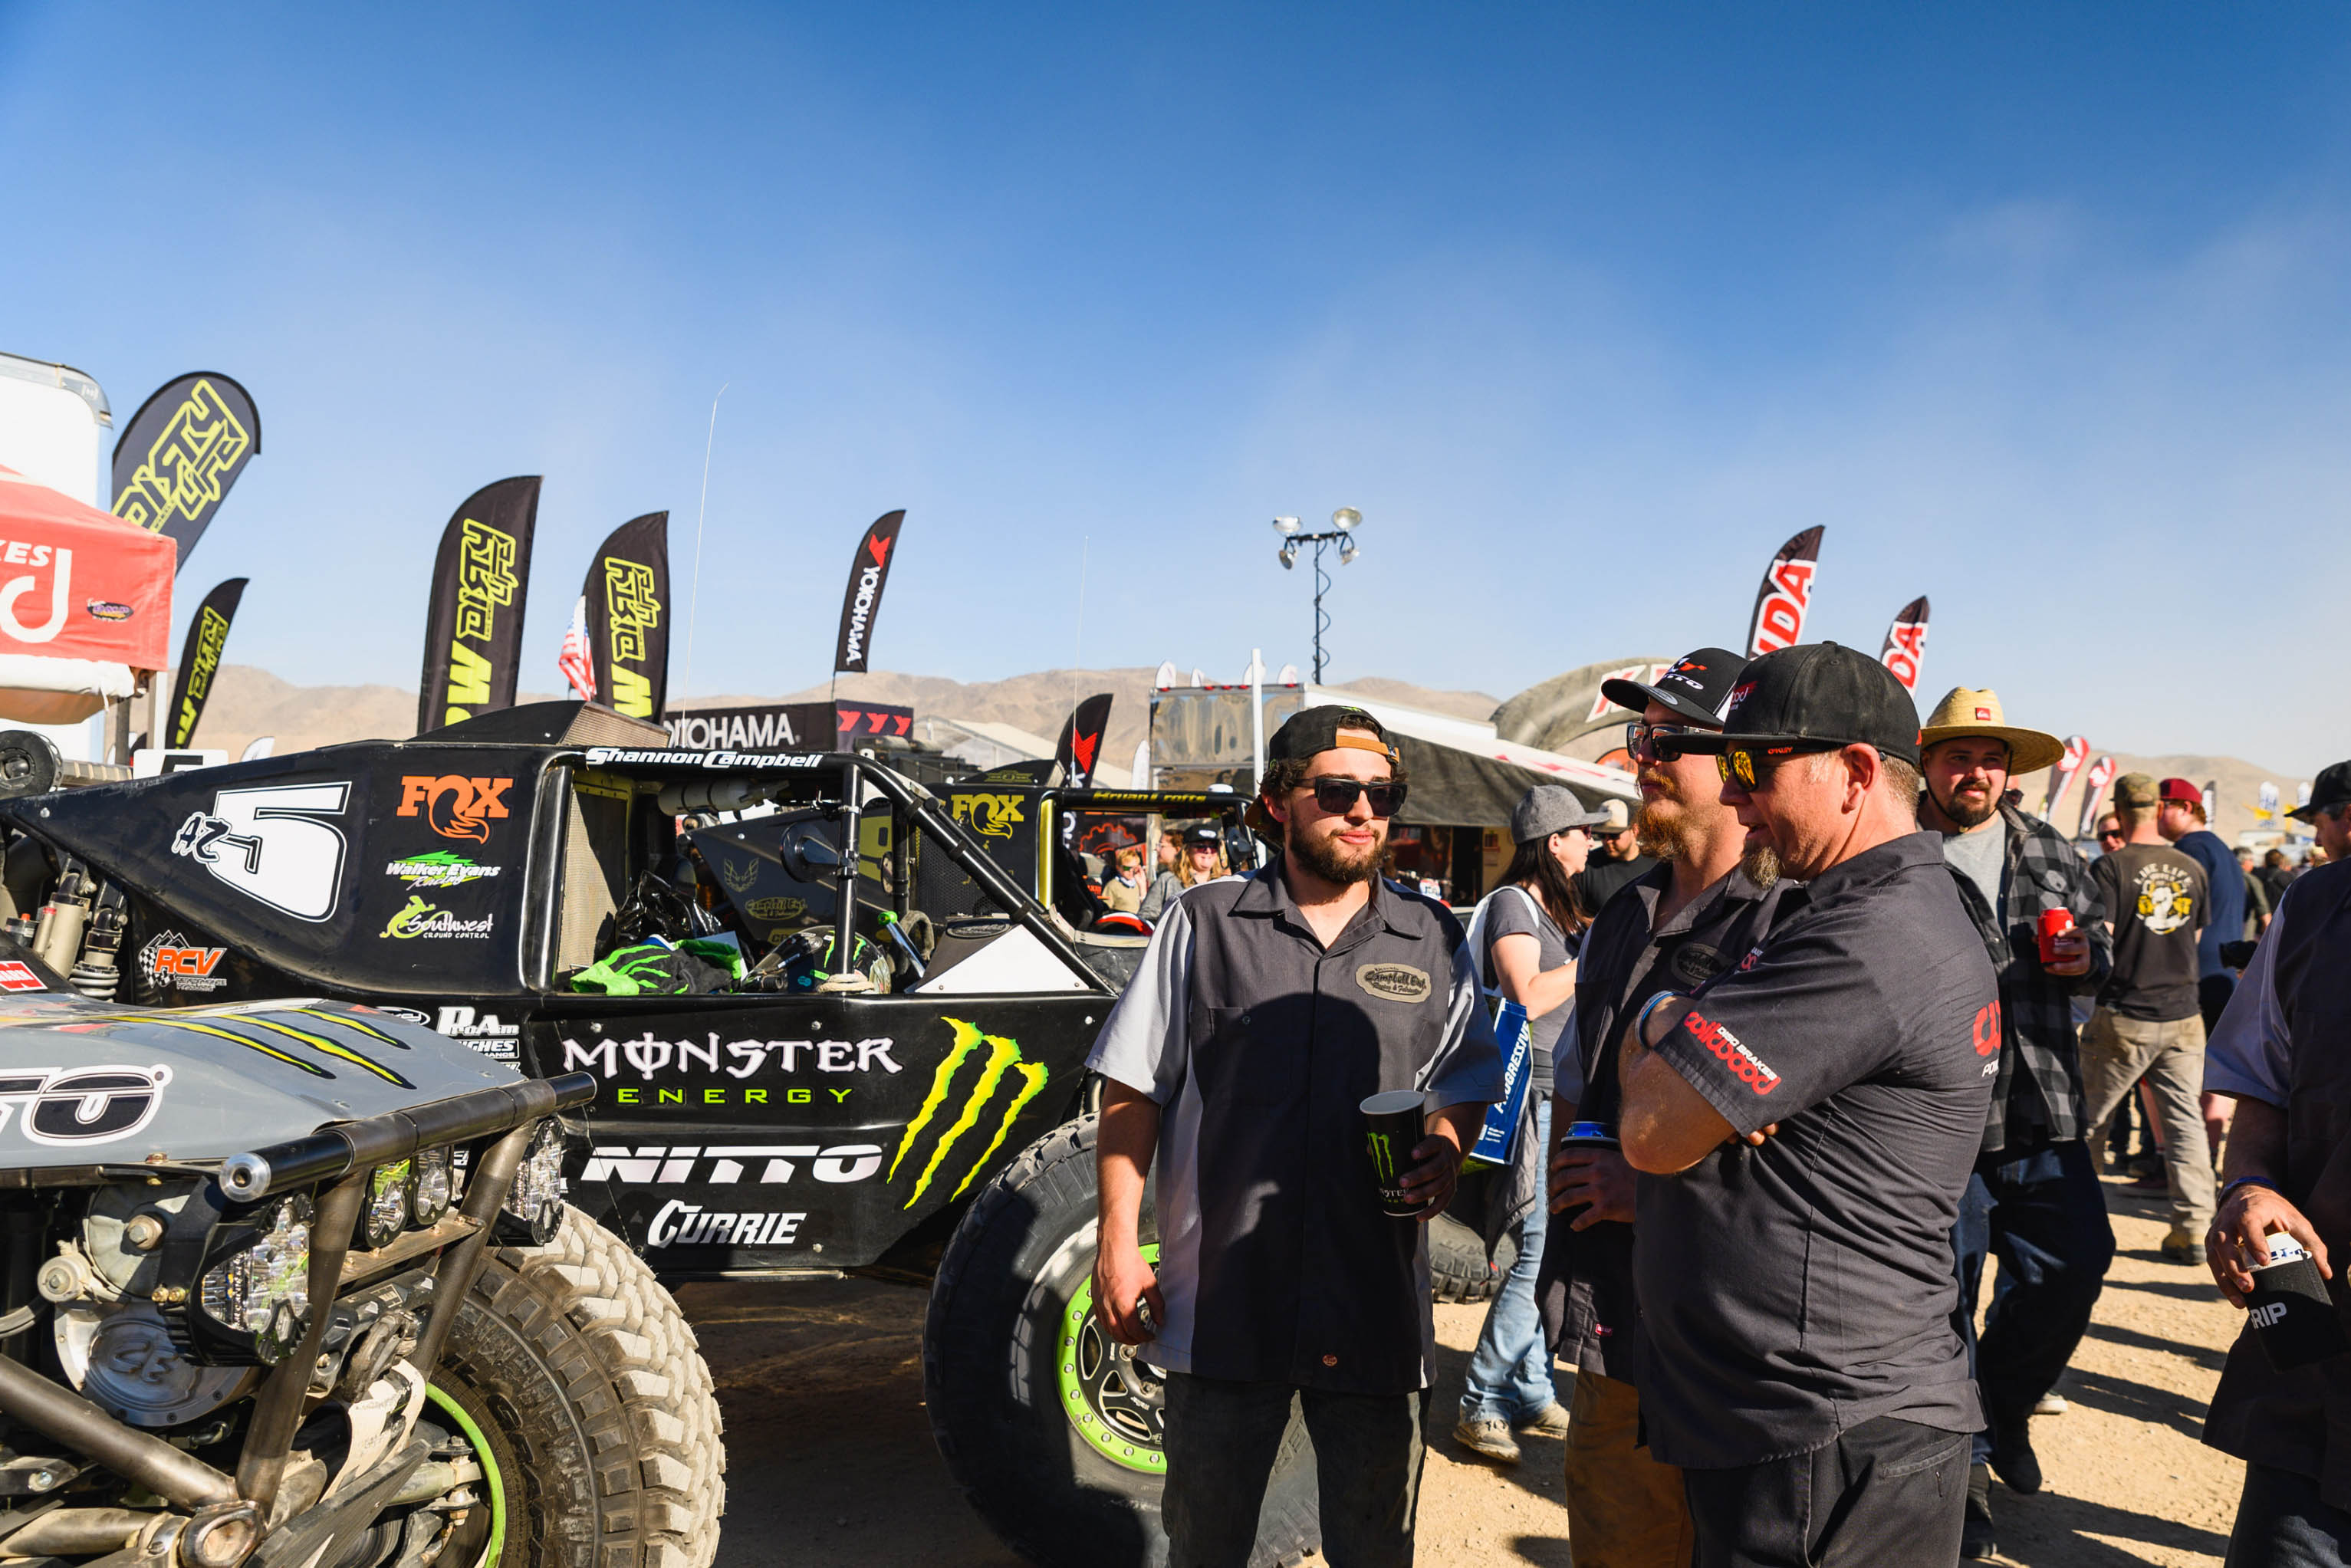 King of the Hammers meeting with Campbell Enterprises